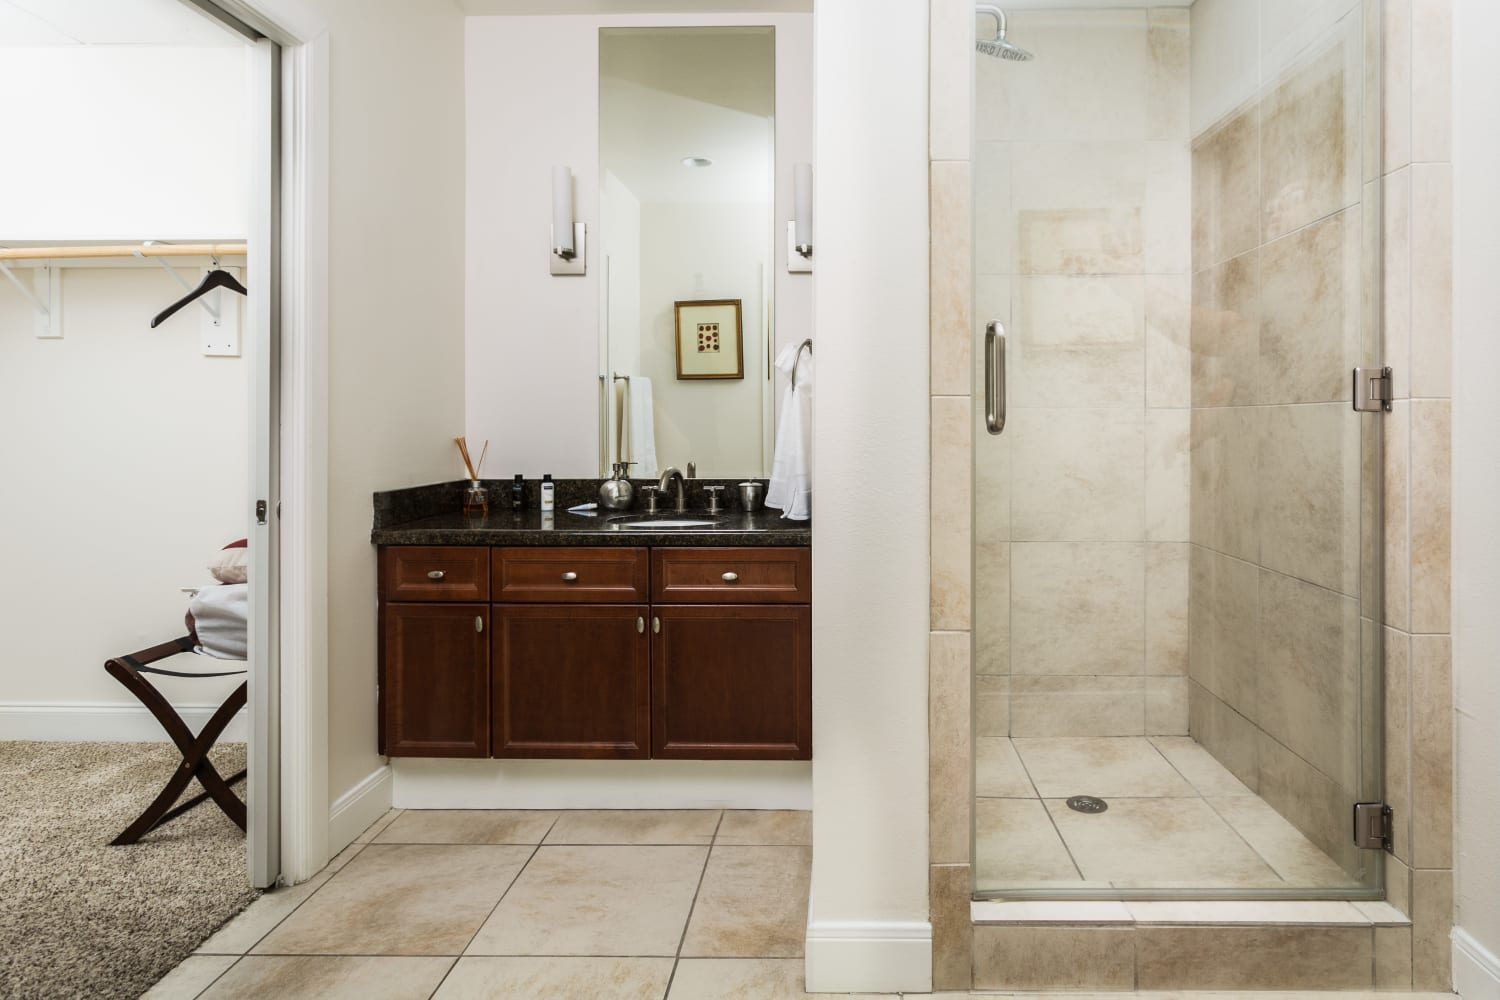 Modern bathroom with granite at The Heights at Park Lane in Dallas, Texas